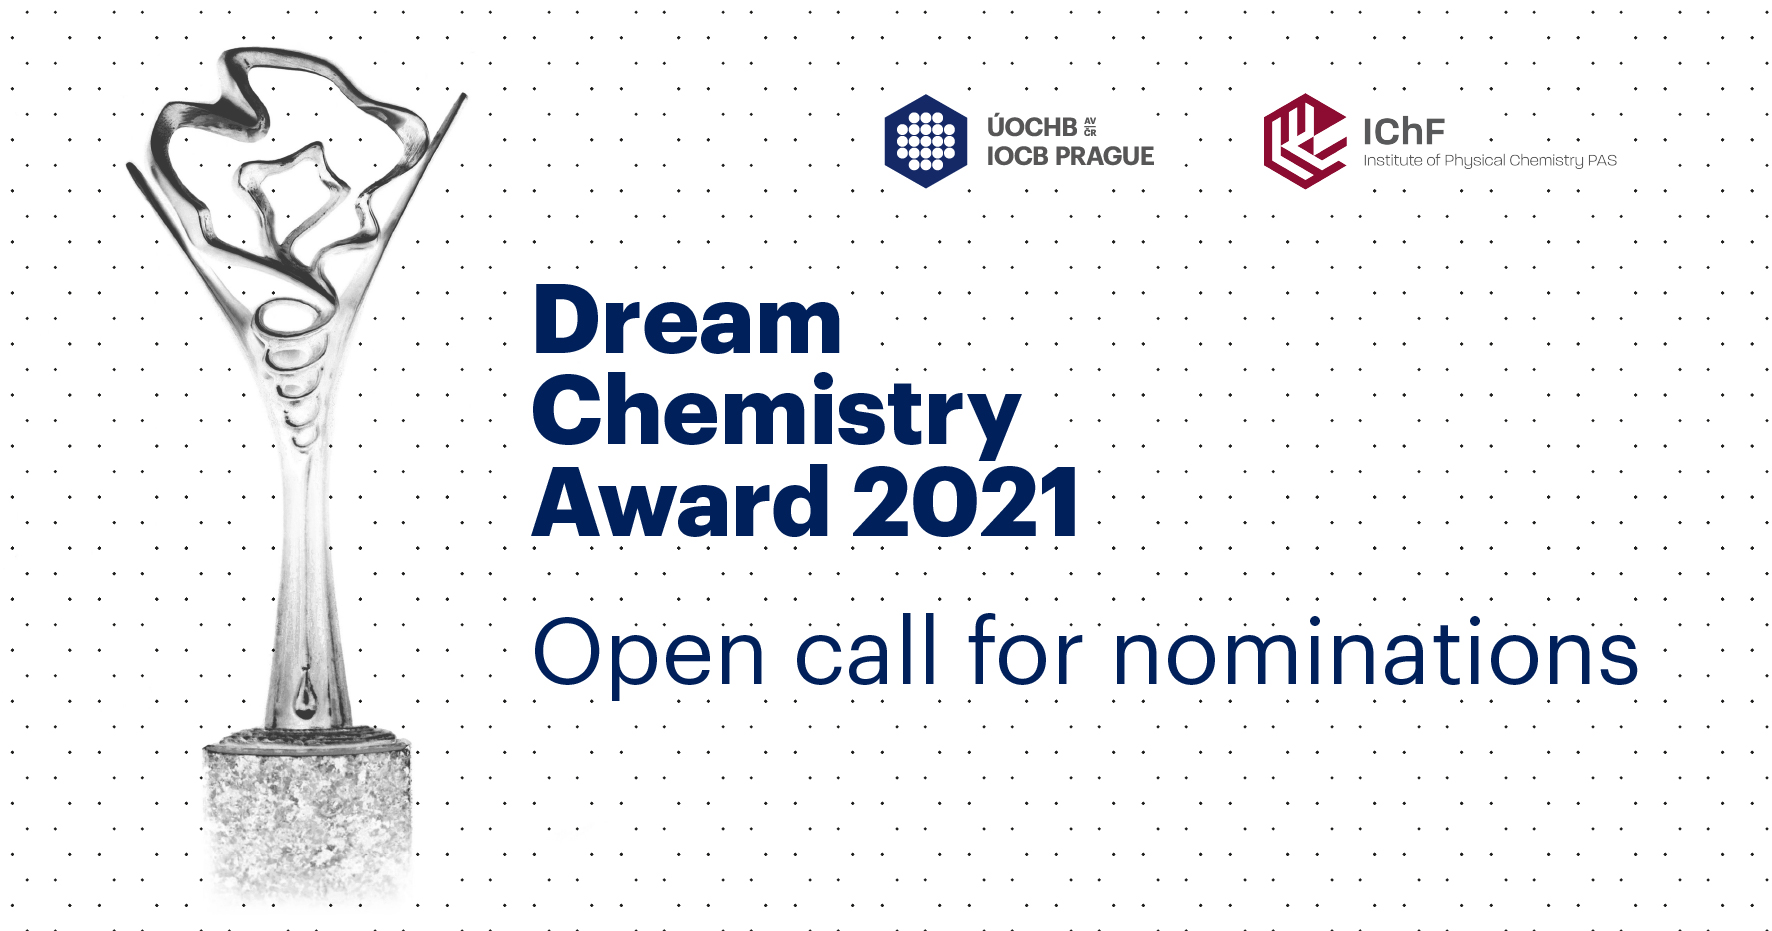 Dream Chemistry Award 2021: Call for nominations